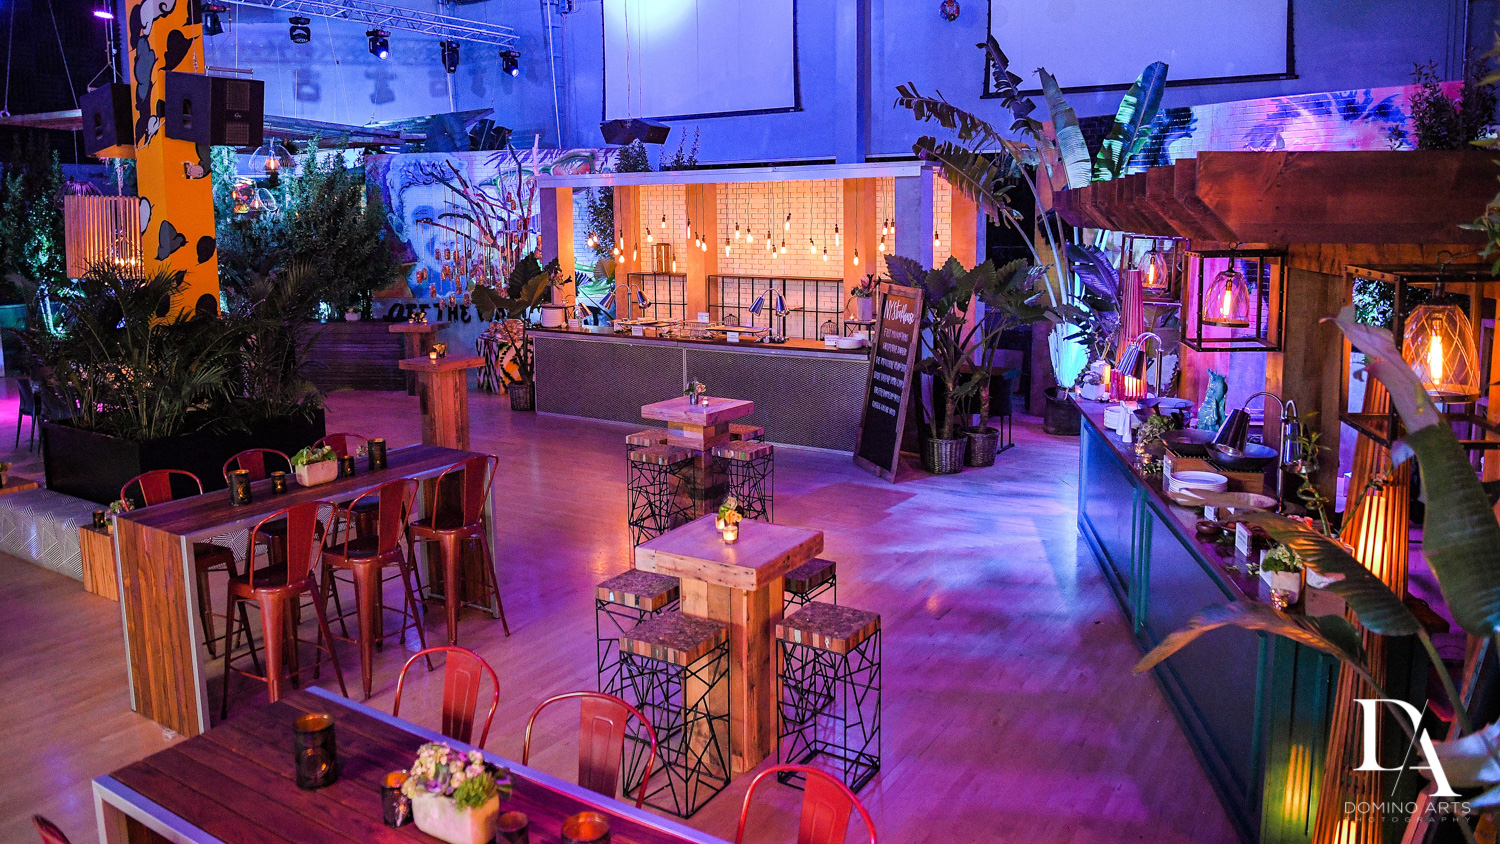 amazing decor at Urban Graffiti BNai Mitzvah with celebrity Shaq at Xtreme Action Park by Domino Arts Photography